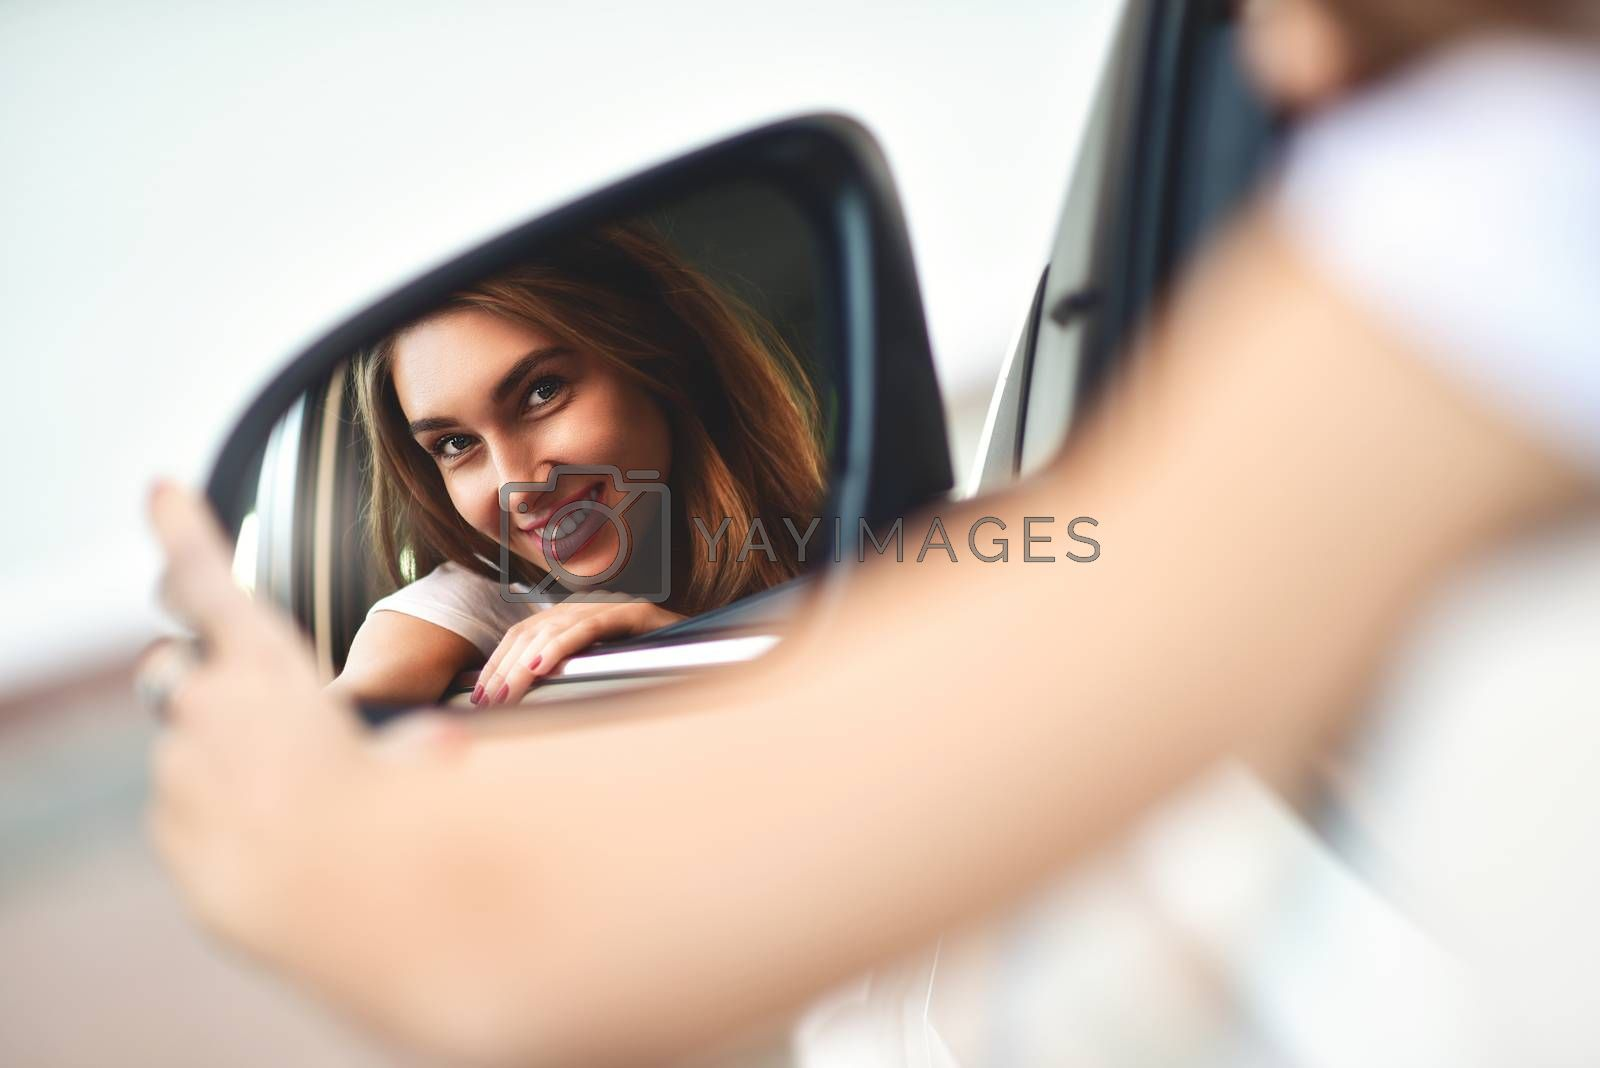 Portrait of cute smiling girl sit in the .car and look at the car mirror